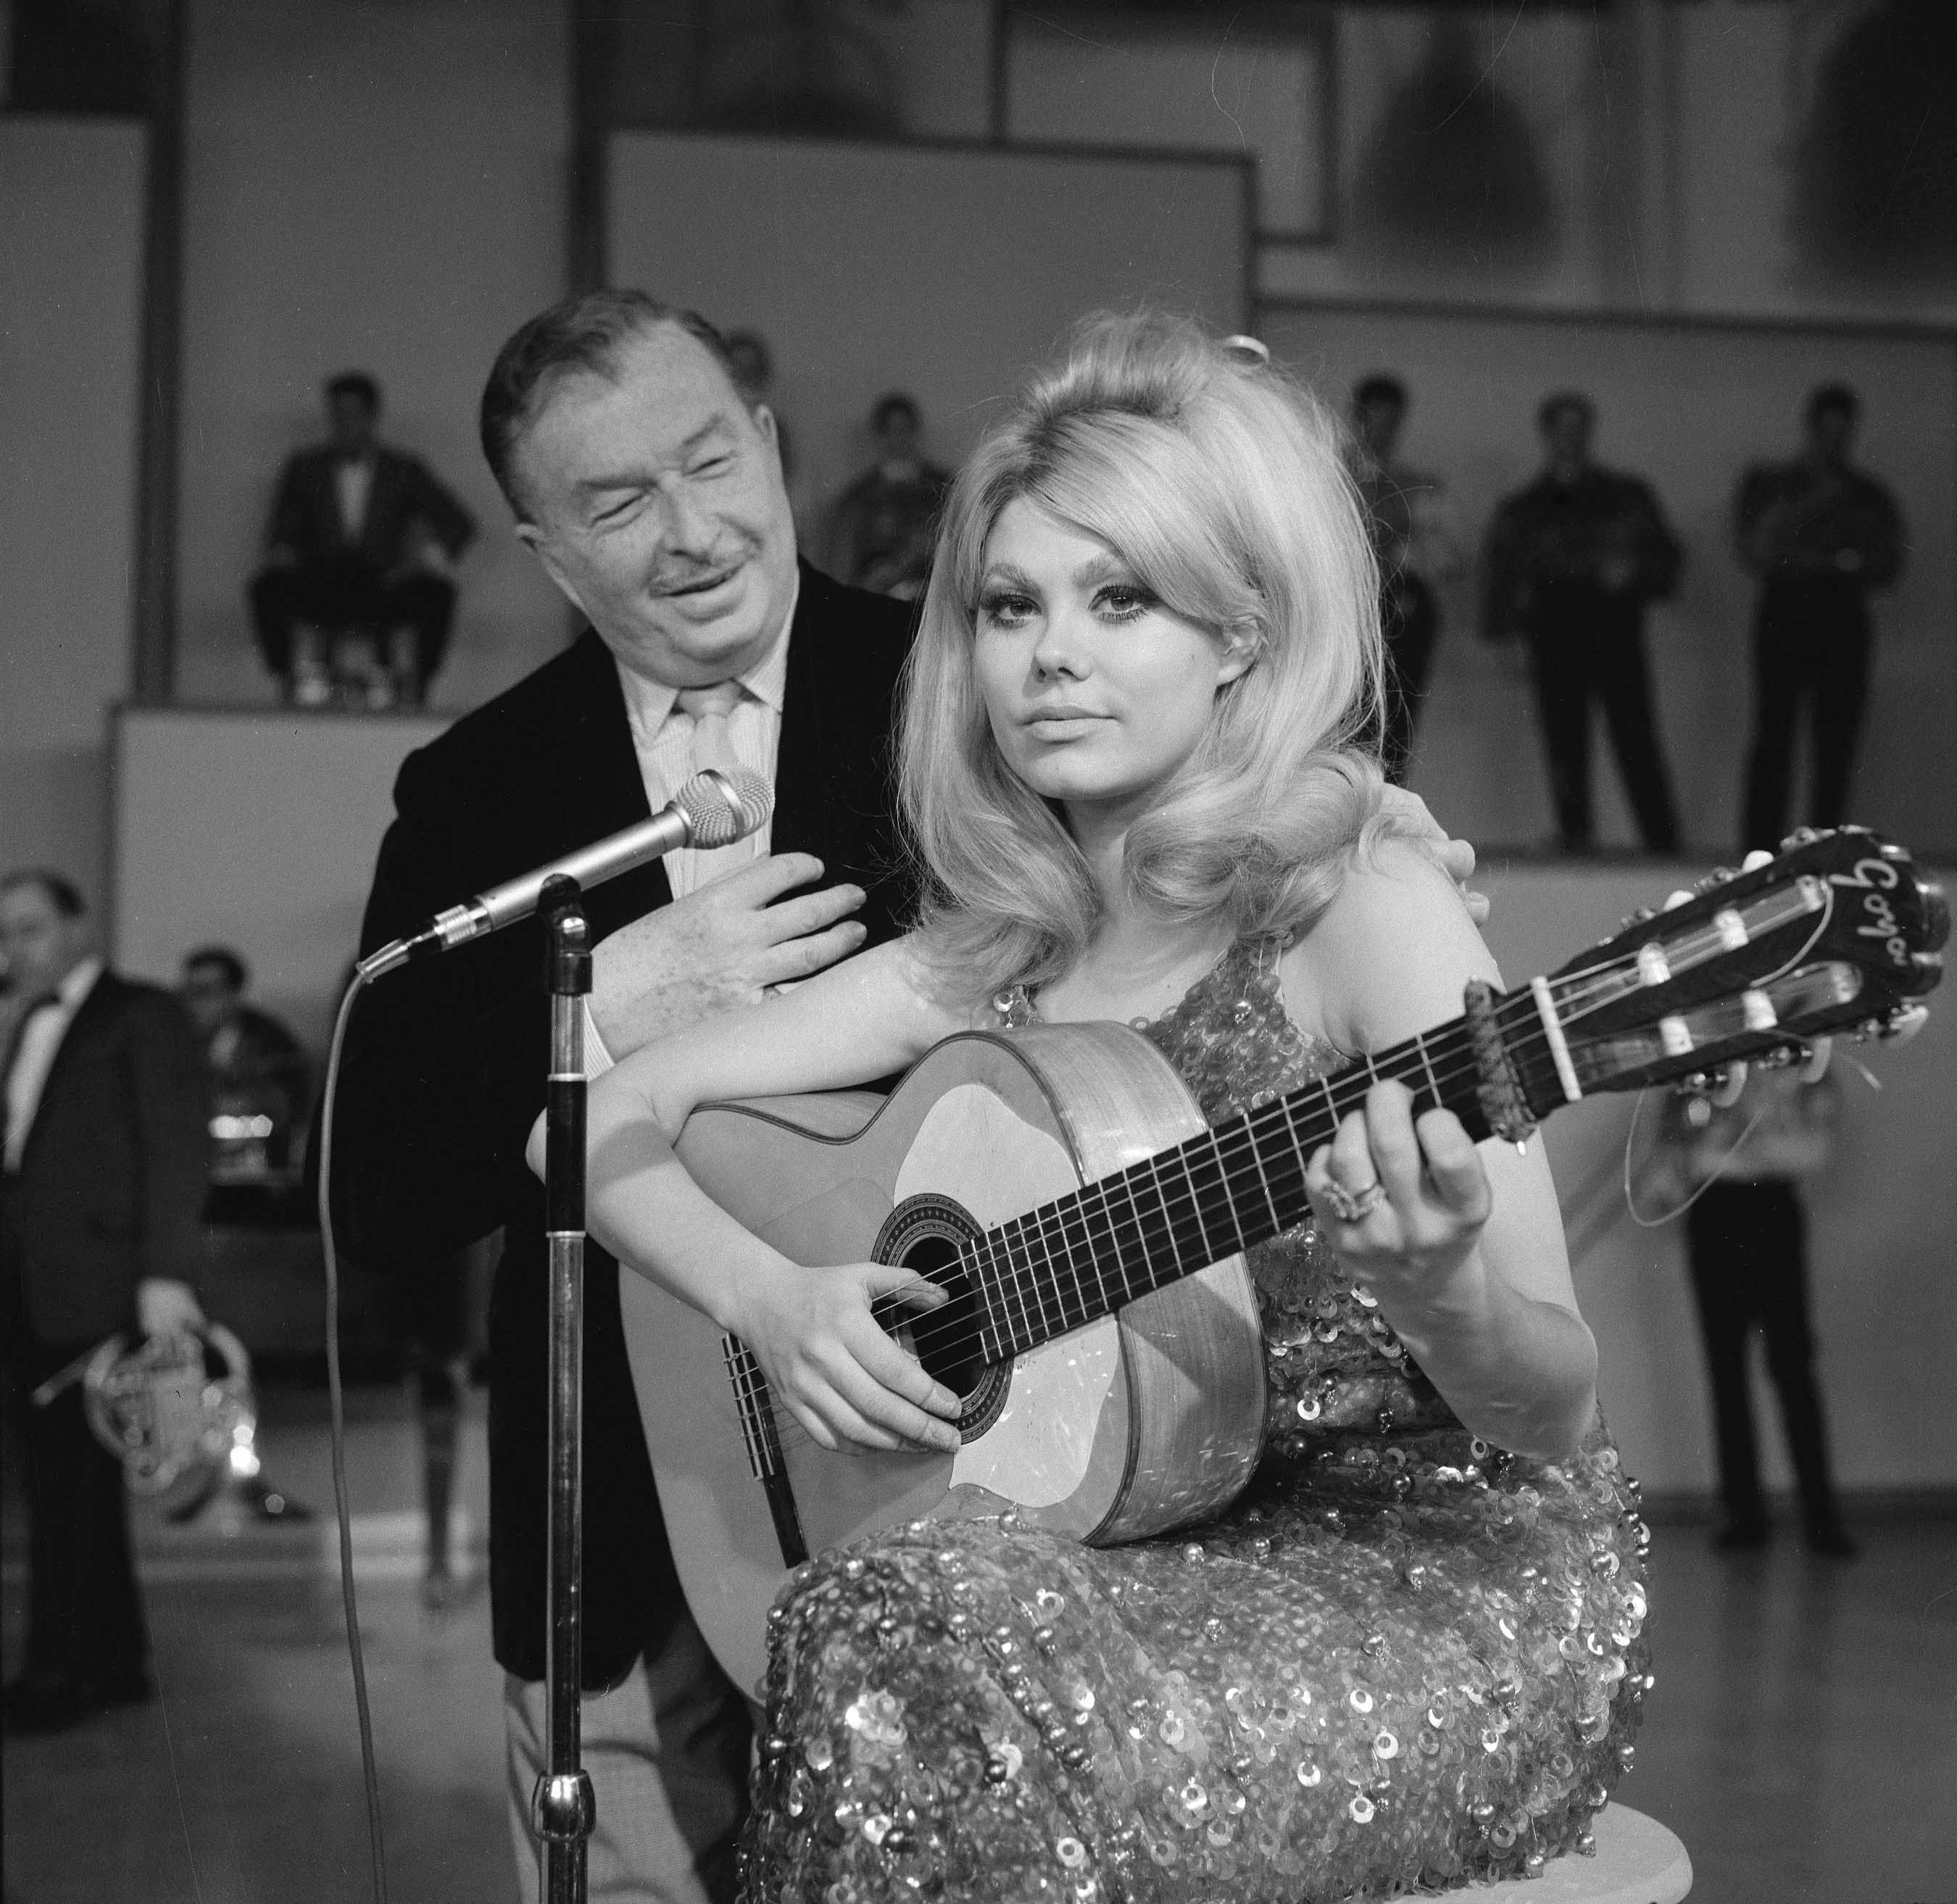 Charo on a stage sitting on a stool and in front of microphone while holding a guitar